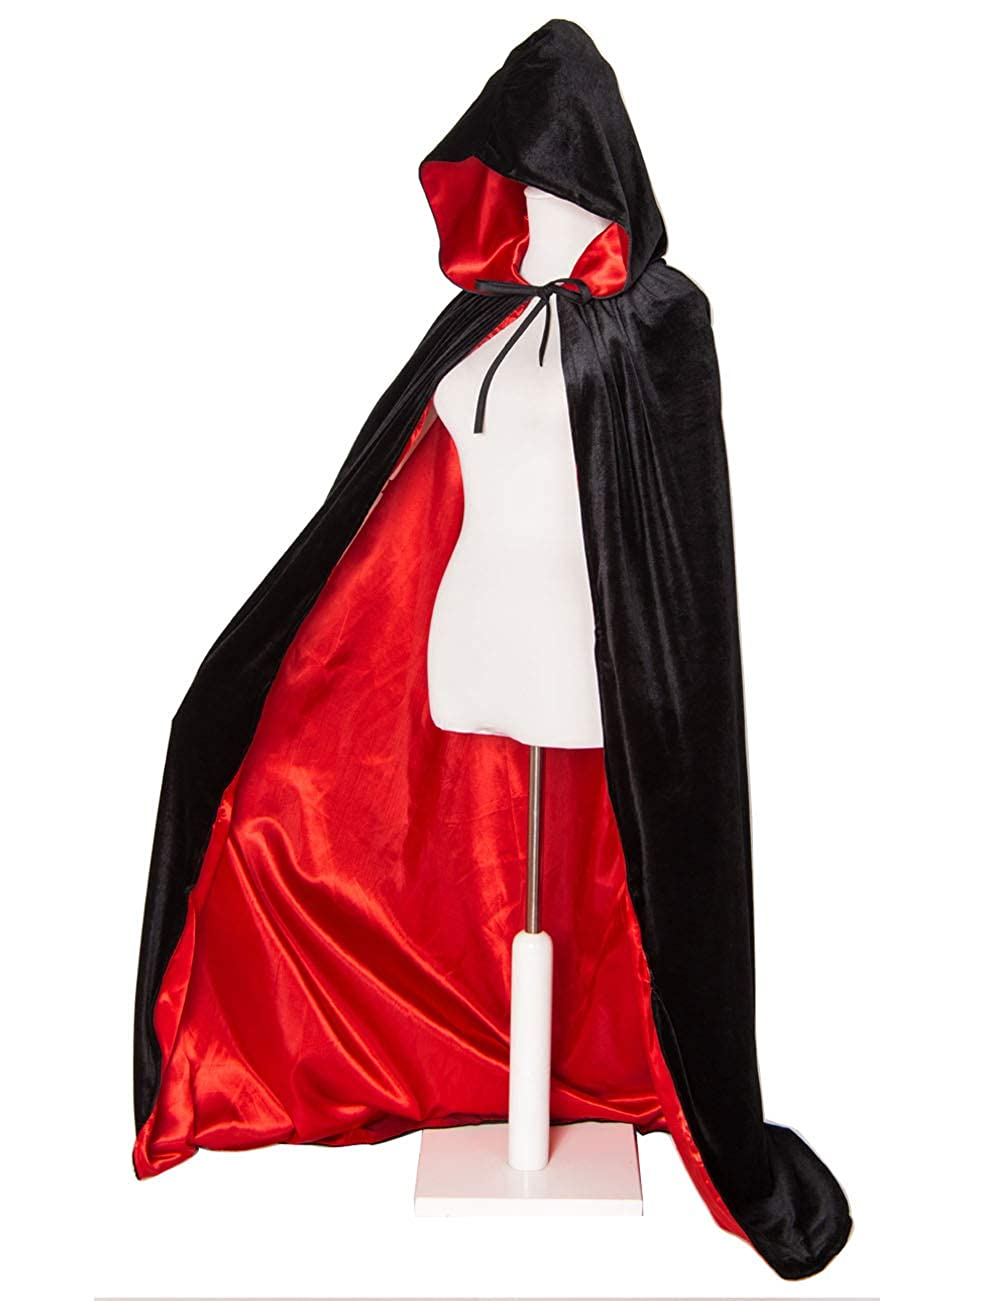 GRACIN 60' Adult Costume Hooded Cloak, Halloween Medieval Velvet Cape Lined with Satin Halloween Vampire Cape Medieval Cloak Lined with Satin (Large Black Red)